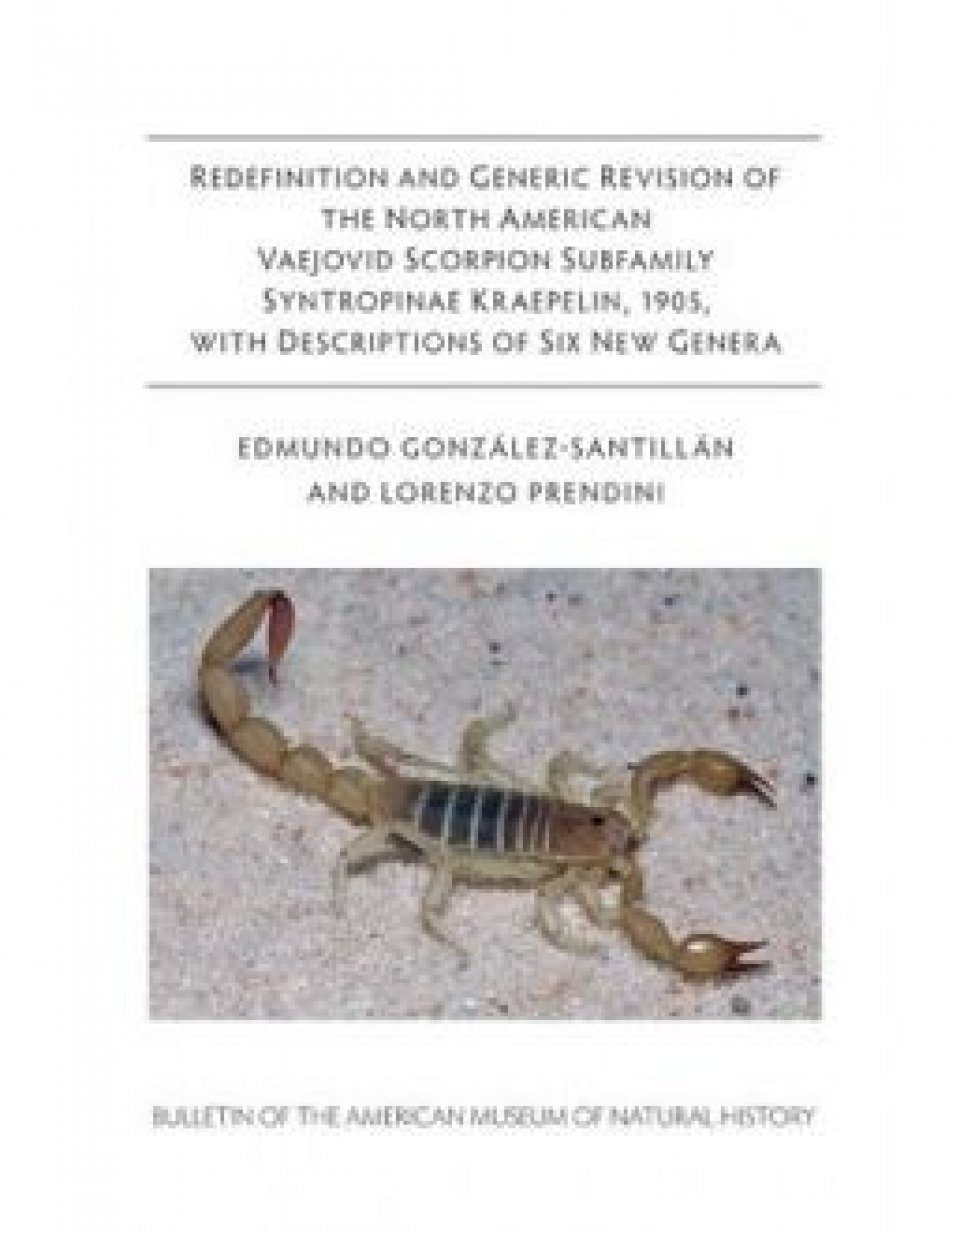 Redefinition and Generic Revision of the North American Vaejovid Scorpion Subfamily Syntropinae Kraepelin, 1905, with Descriptions of Six New Genera